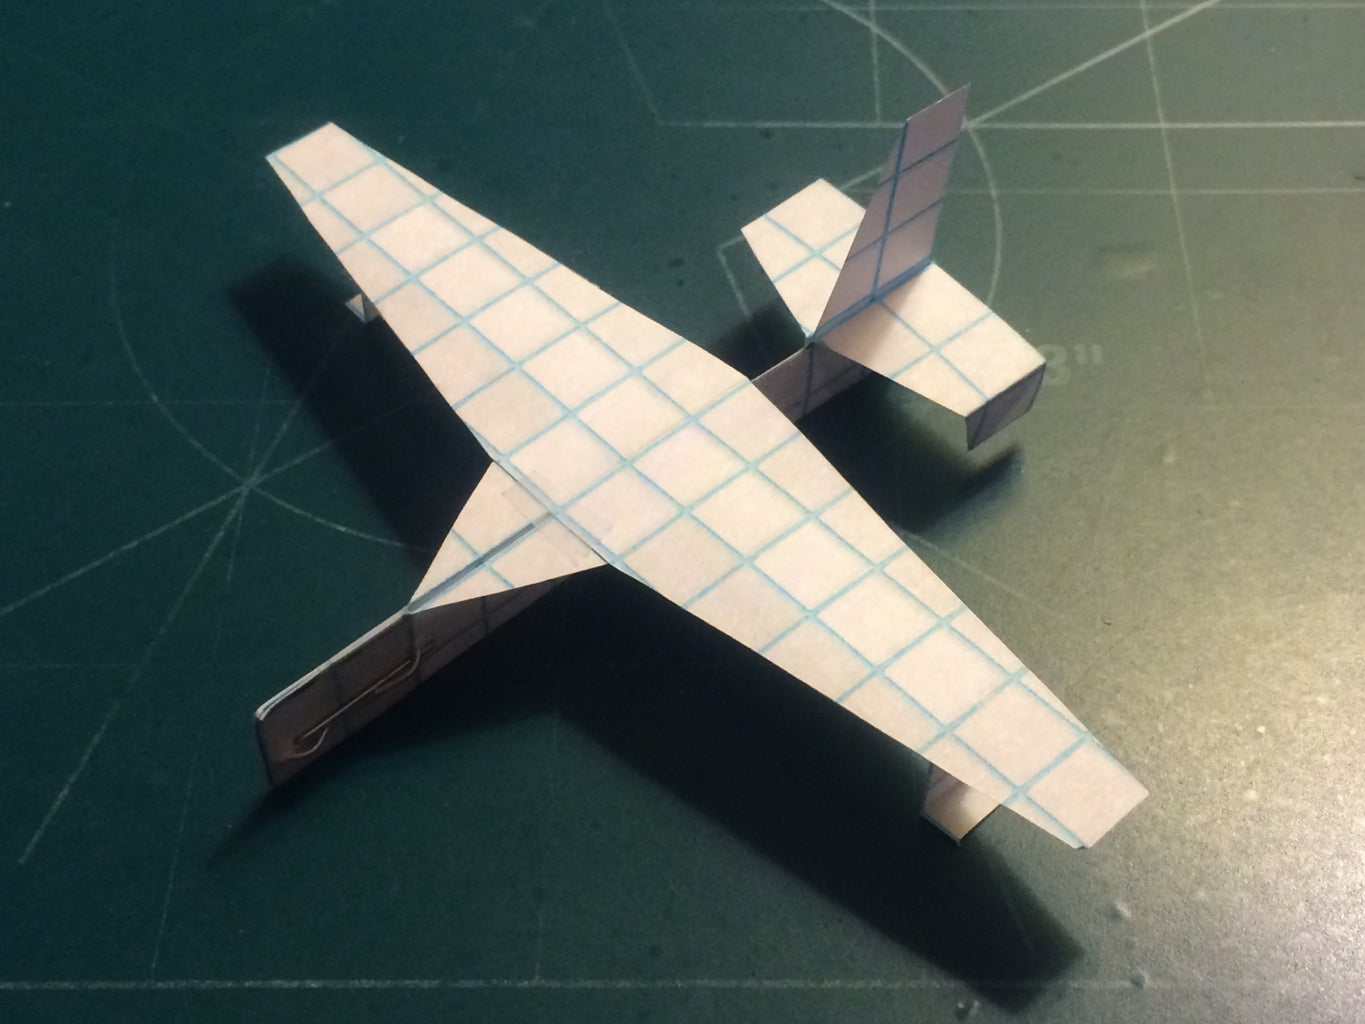 How to Make the StratoTomahawk Paper Airplane